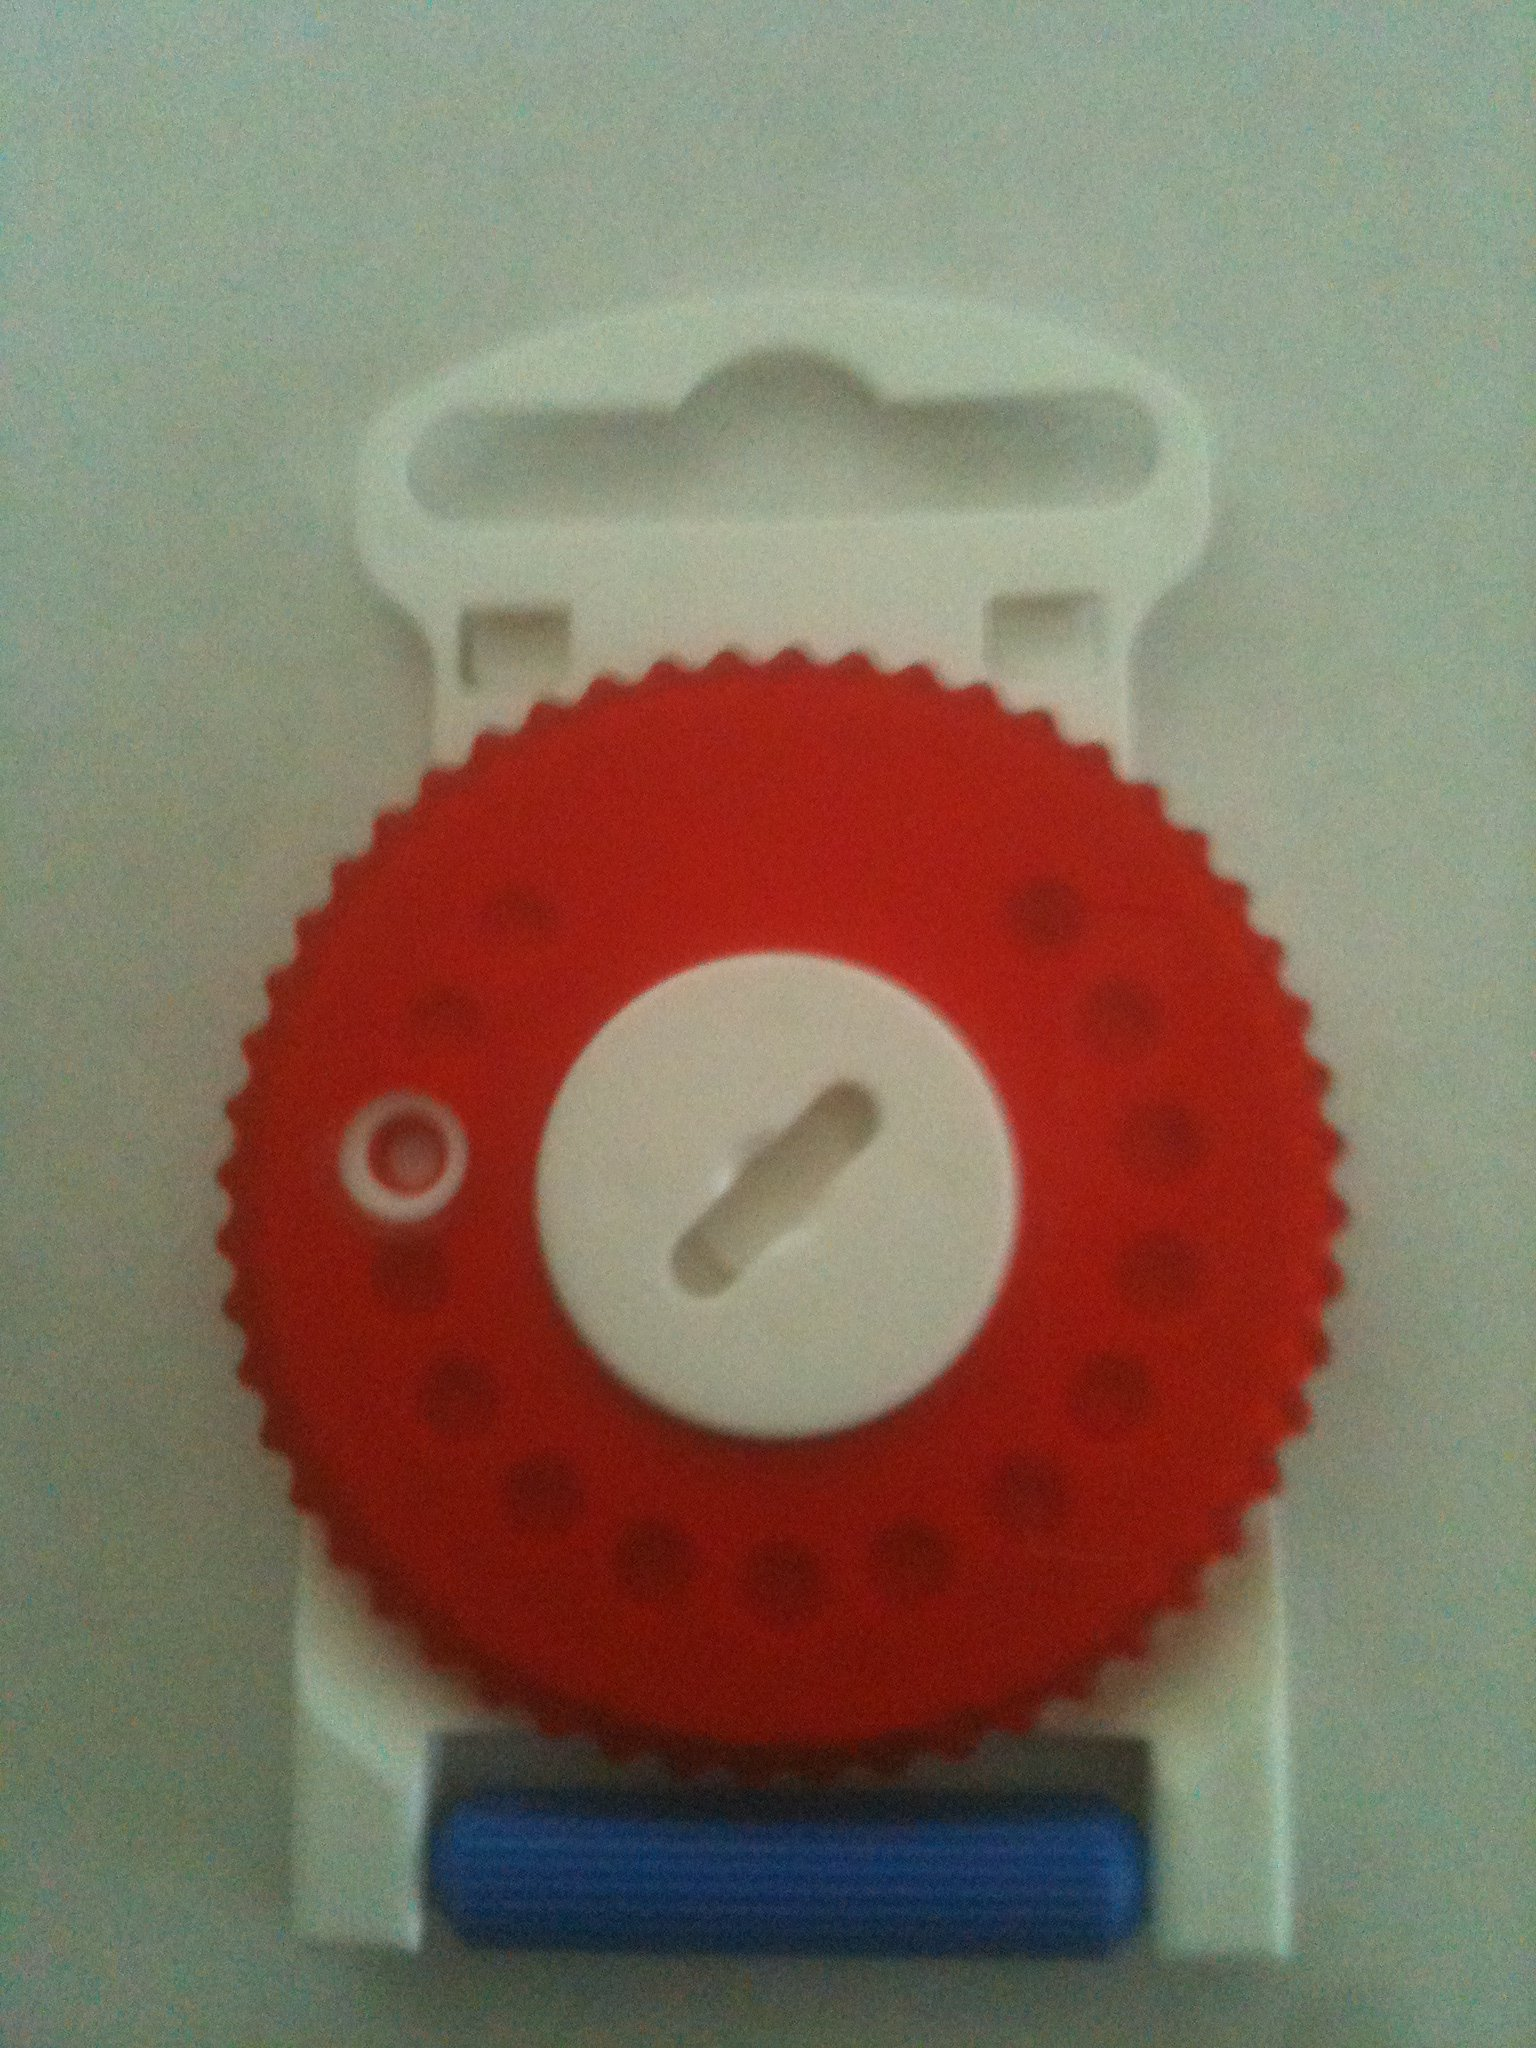 HF3 RED Wax Guard Wheel for Resound Hearing Aids - RIGHT SIDE RED by Hearing Aid Supply Shop